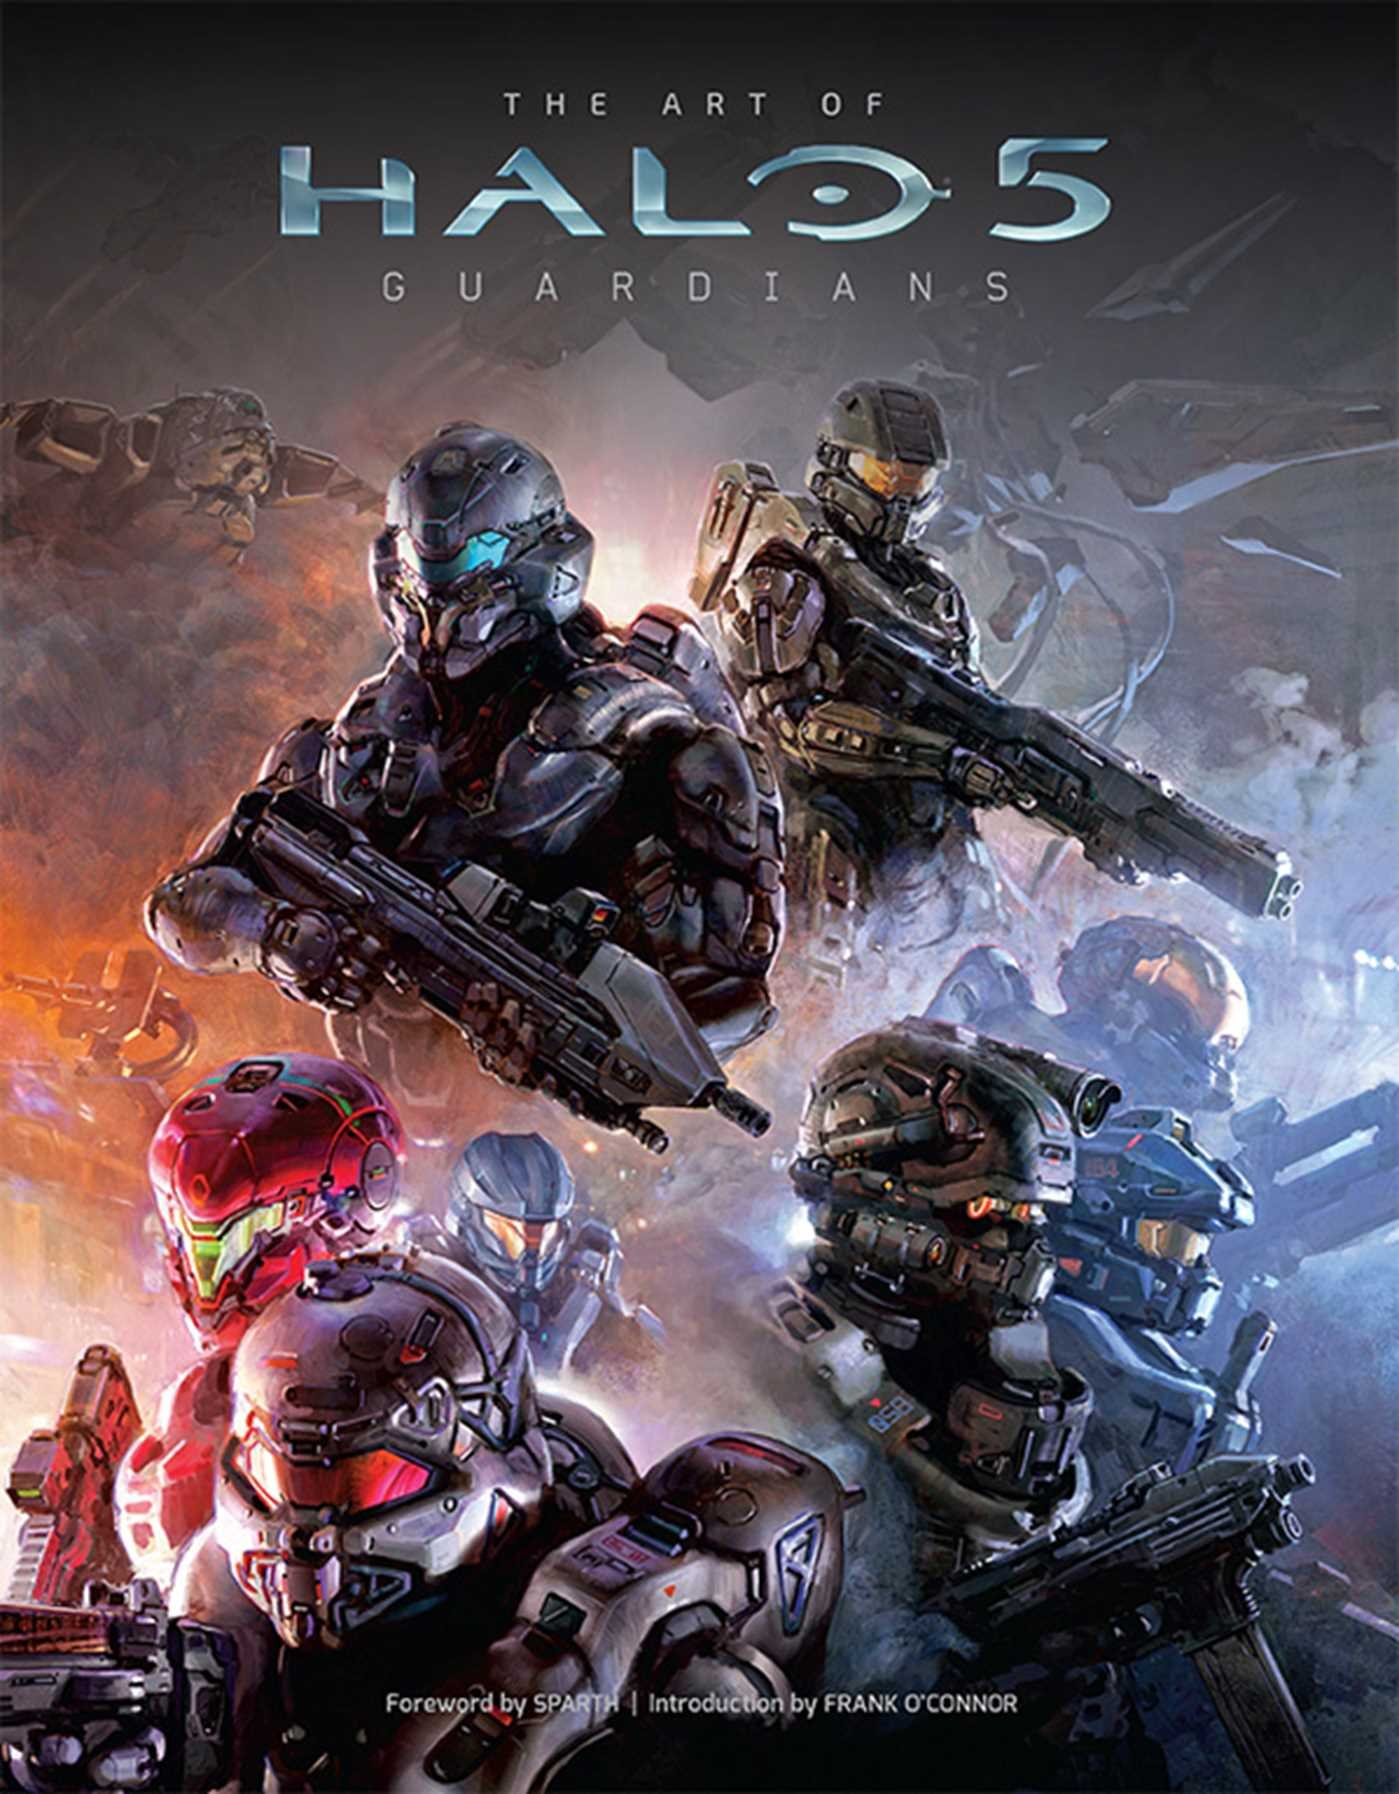 Amazoncom The Art of Halo 5 Guardians 9781608876495